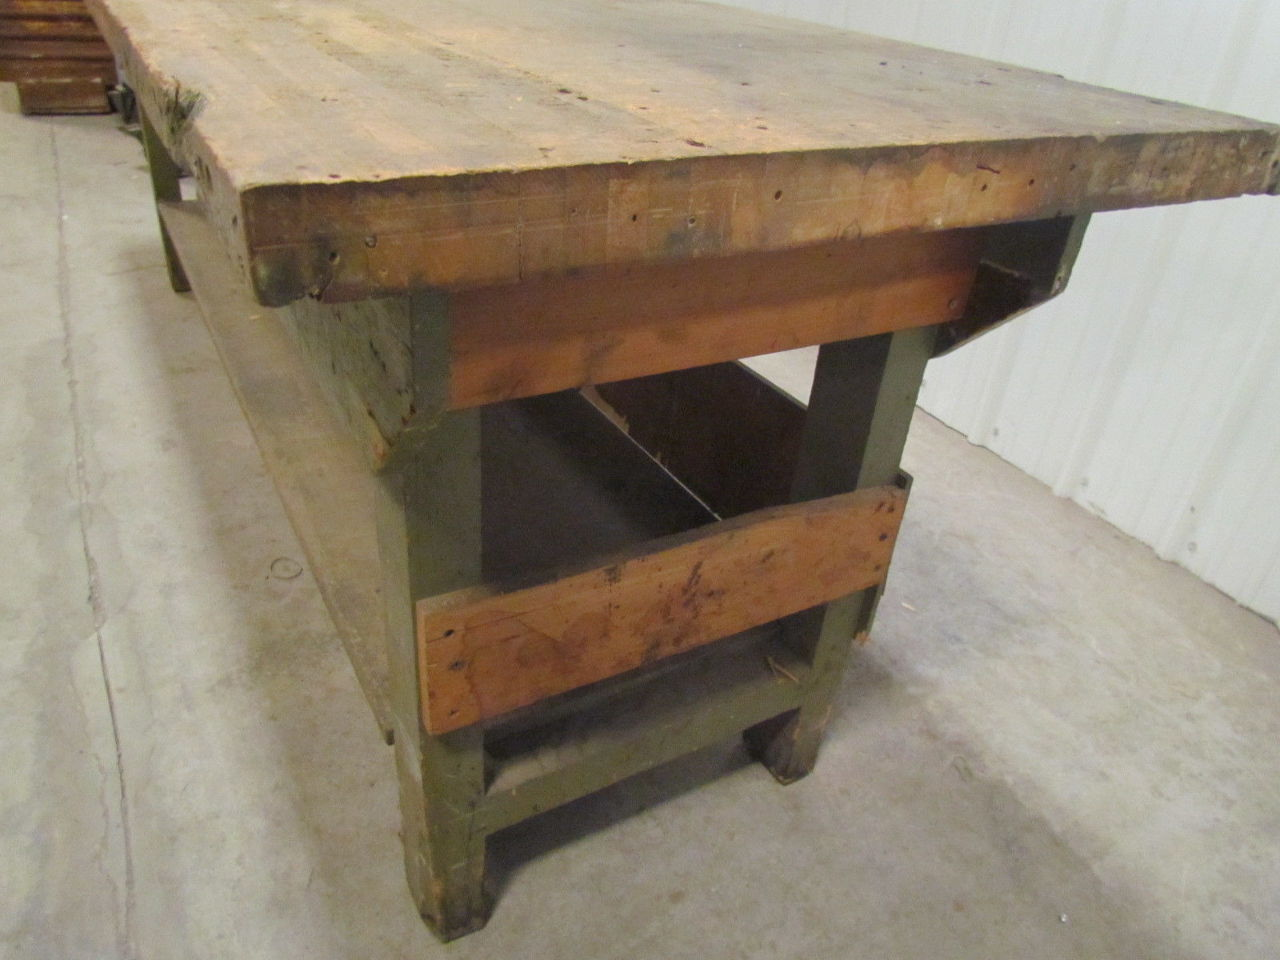 Vintage Industrial Butcher Block Workbench Table Wooden Frame 96x28x33